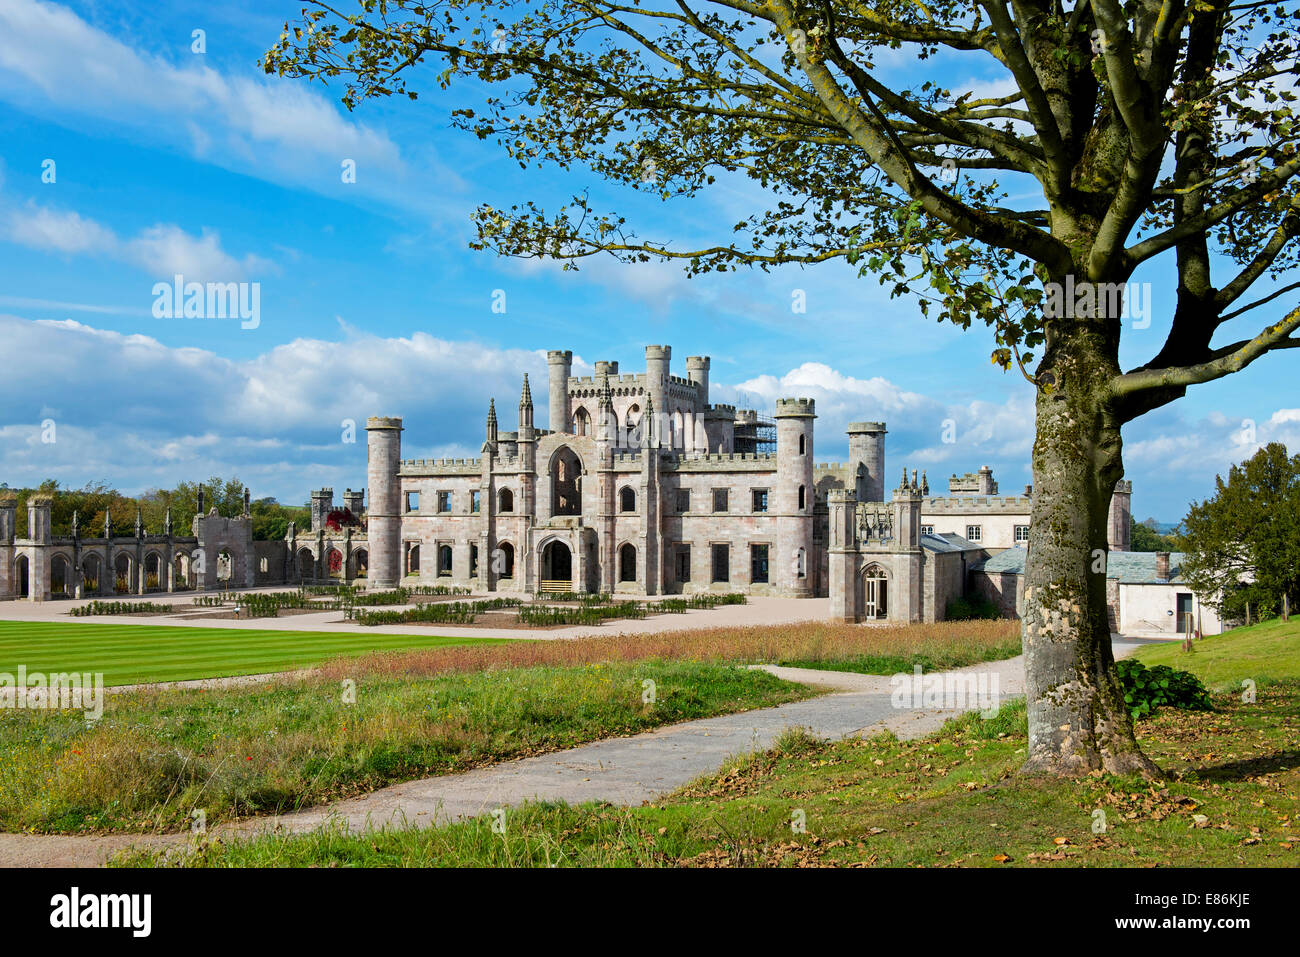 the-ruins-of-lowther-hall-near-penrith-cumbria-england-uk-E86KJE.jpg